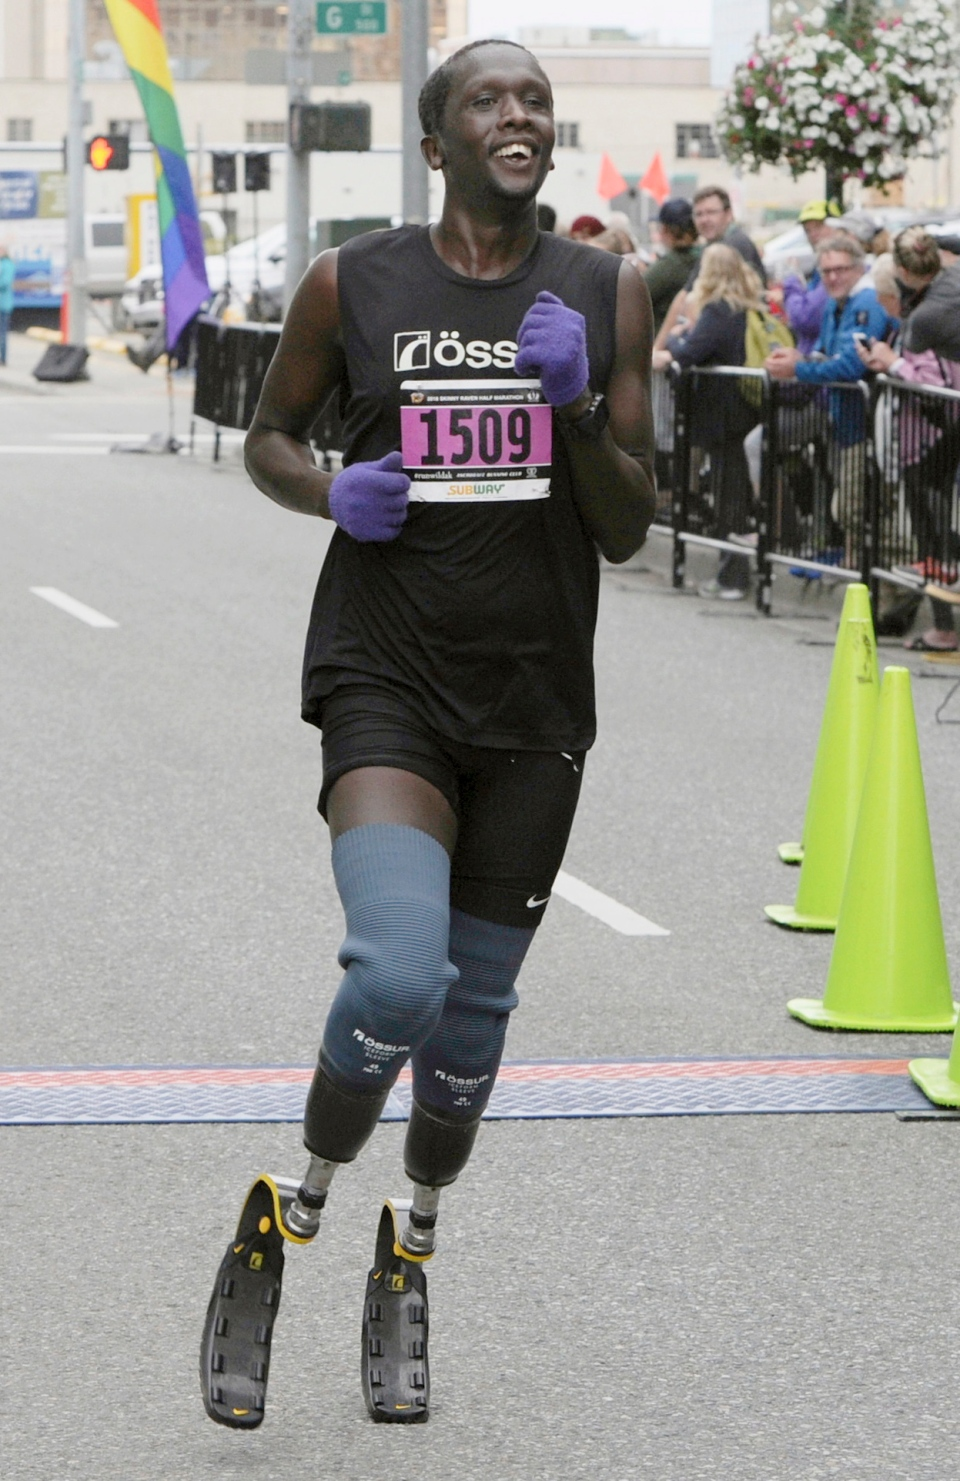 FILE - In this Aug. 19, 2018, photo, Marko Cheseto, a college All-American who lost both feet to frostbite after being stranded outside in an Alaskan blizzard in 2011, competes in the Skinny Raven Half Marathon during the Anchorage RunFest in Anchorage, Alaska. (Bill Roth/Anchorage Daily News via AP, File)